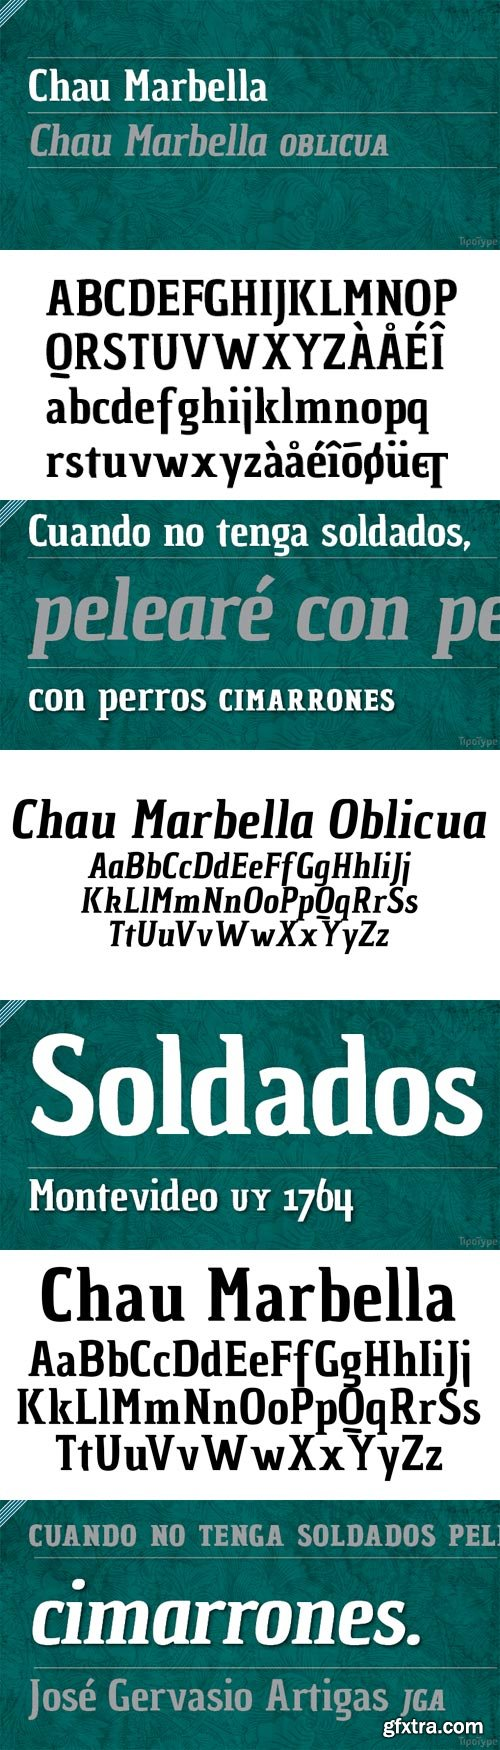 Chau Marbella Font Family - 2 Fonts for $20